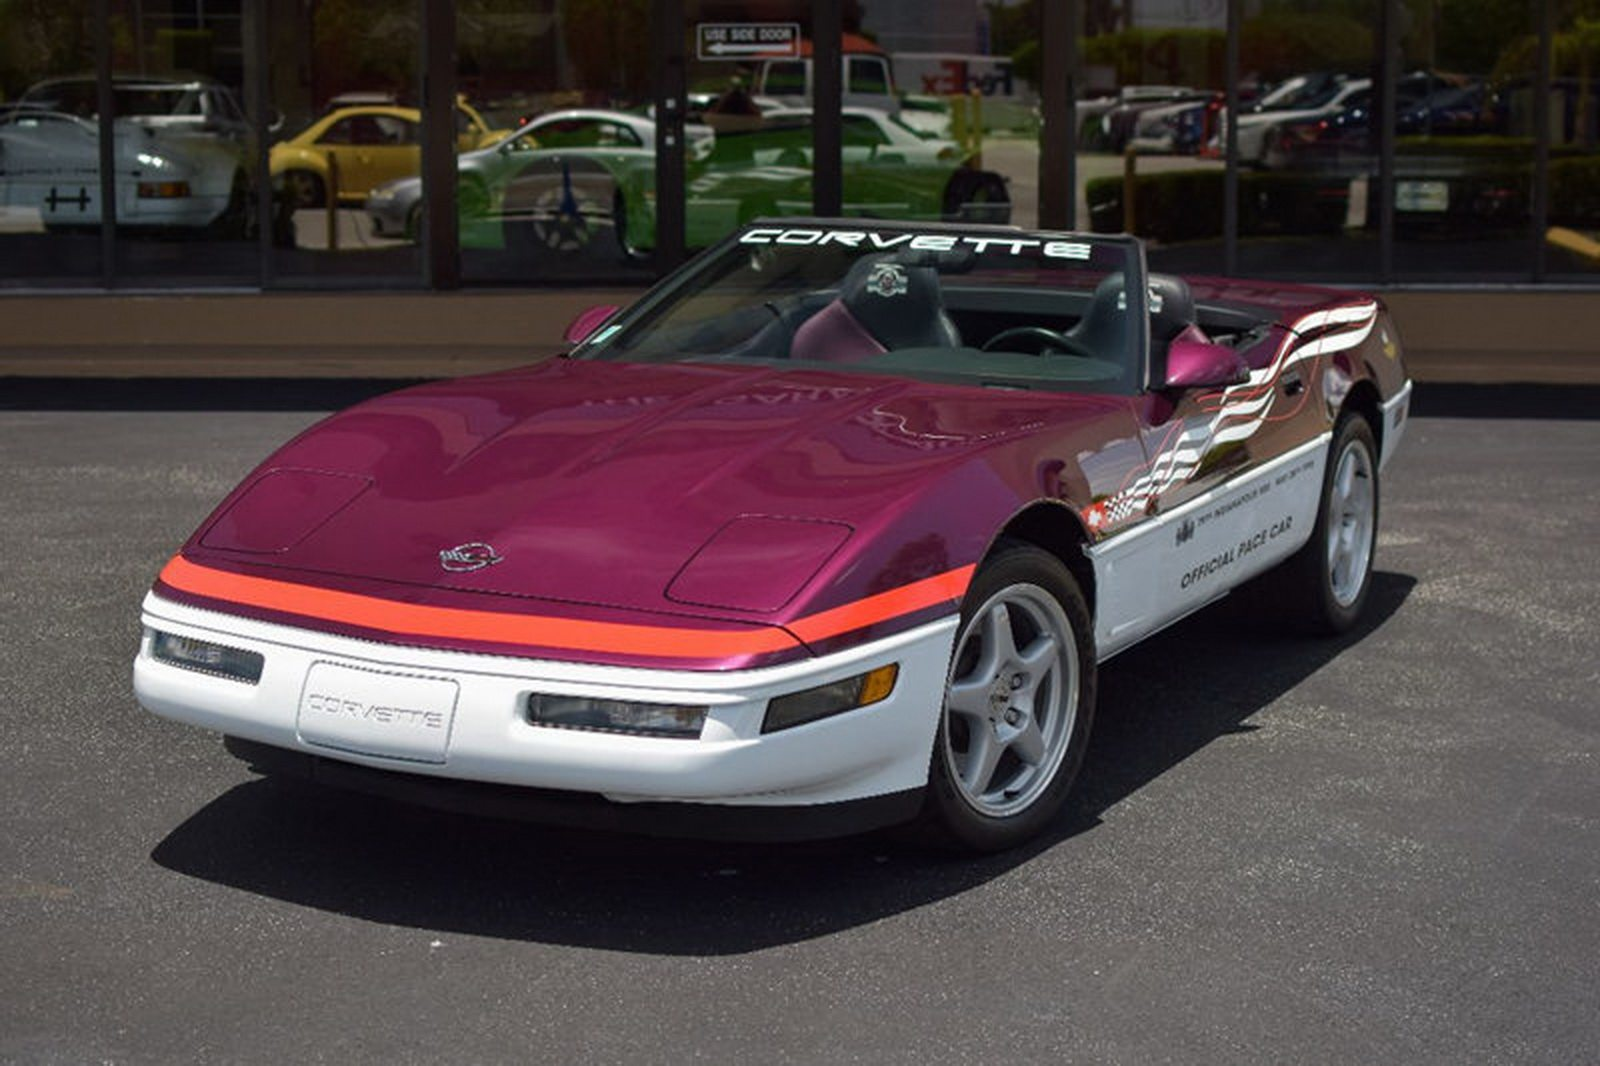 1995 Corvette Indianapolis 500 Pace Car